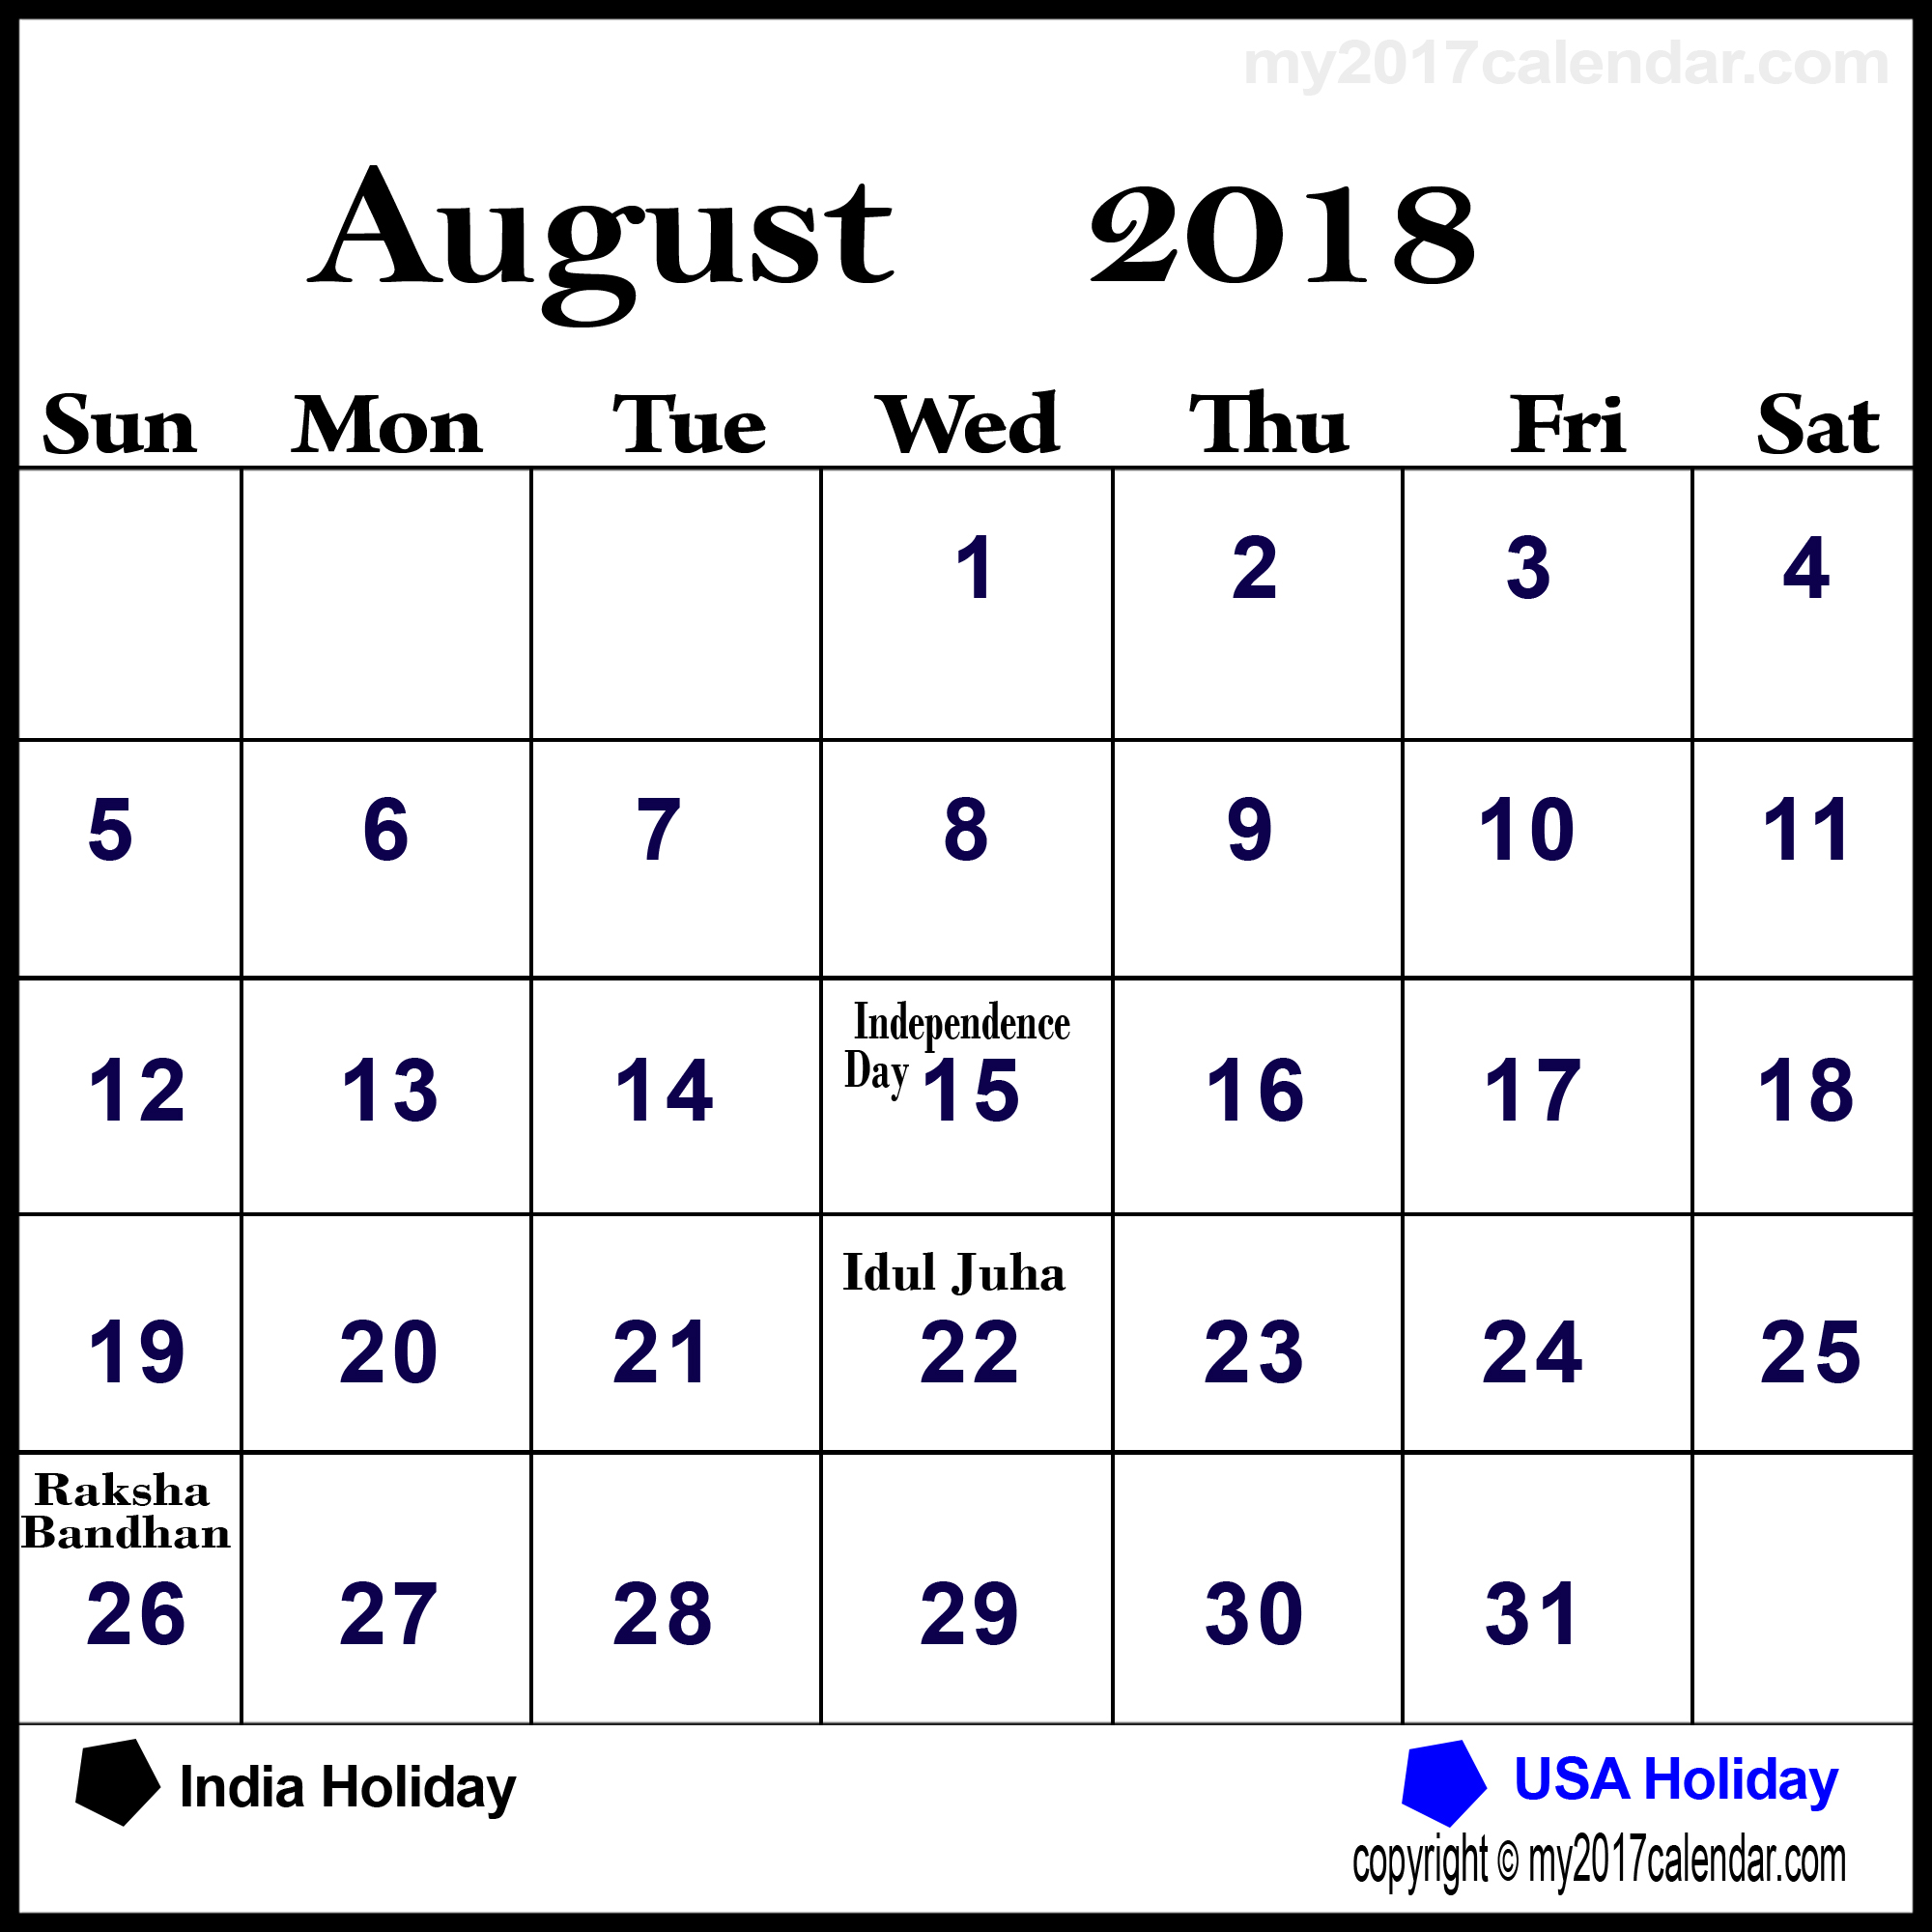 August 2018 Calendar Philippines with Holidays